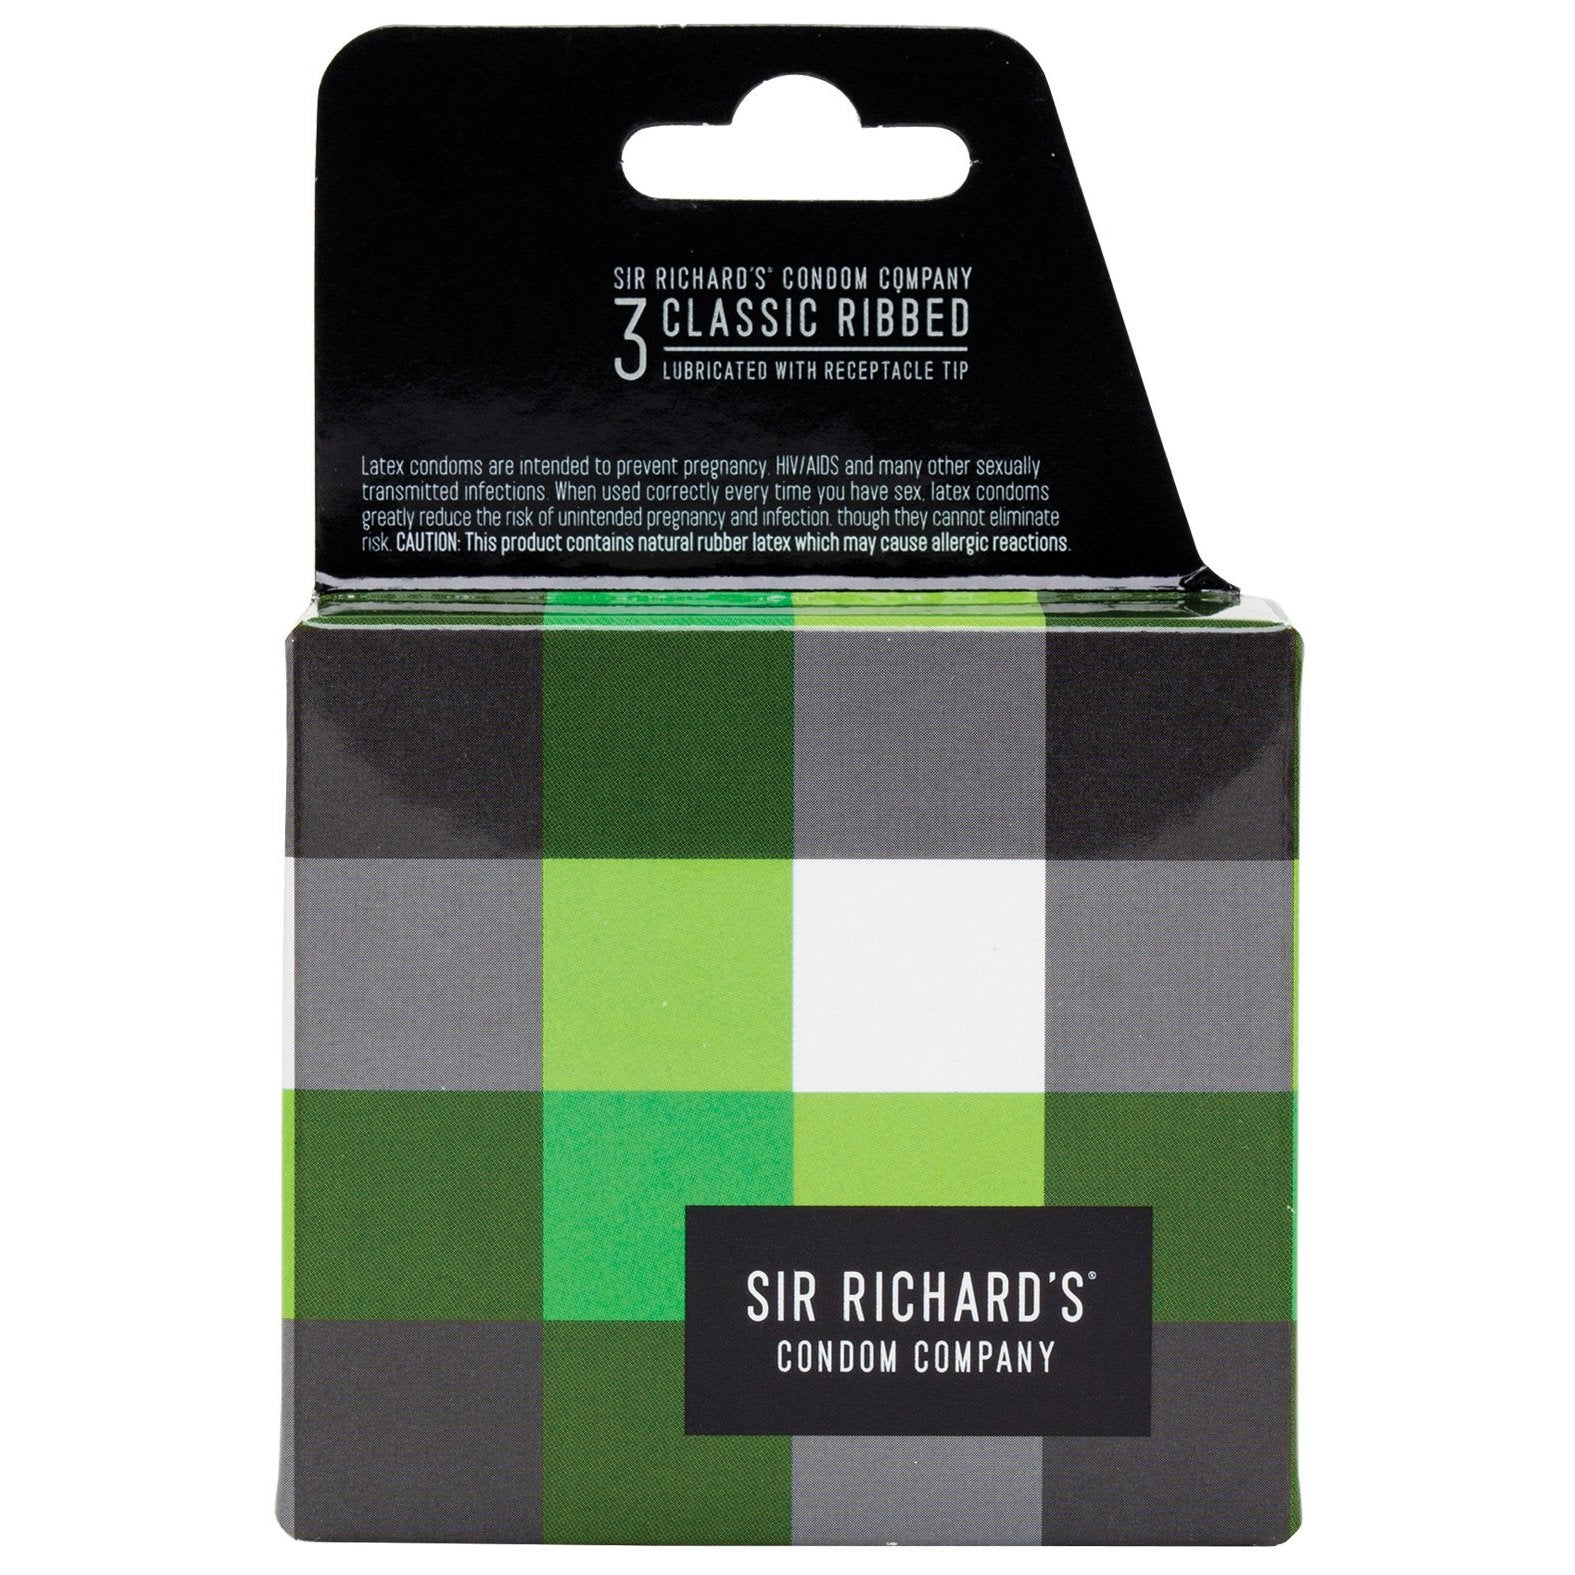 Sir Richard's Classic Ribbed Condom - Pack of 3 - Gay Men's Sex Toys - Adam's Toy Box